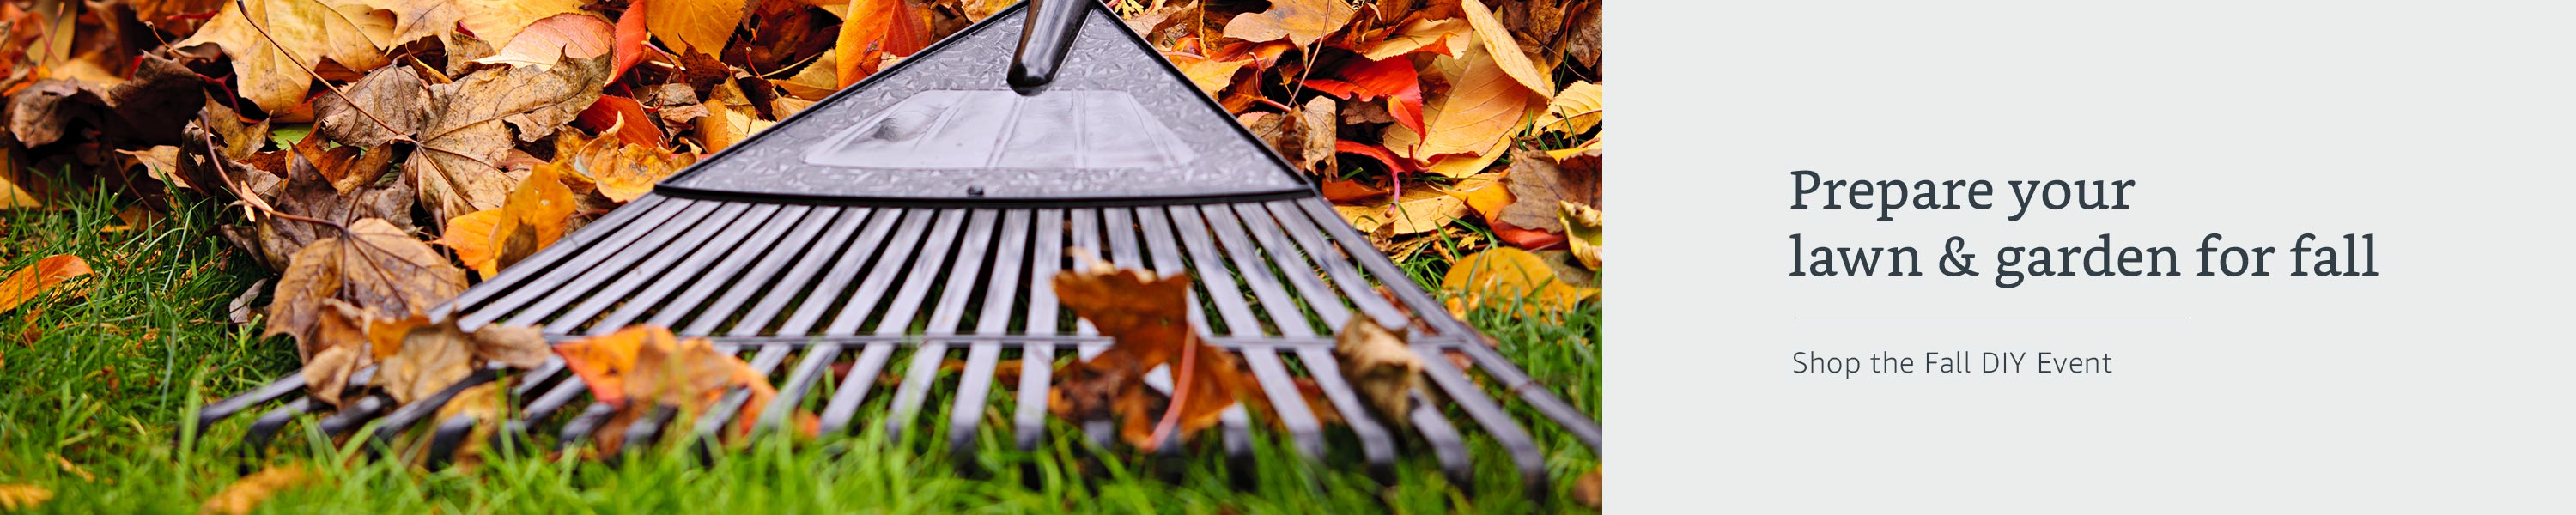 Prepare your lawn & garden for fall. Shop the Fall DIY Event.